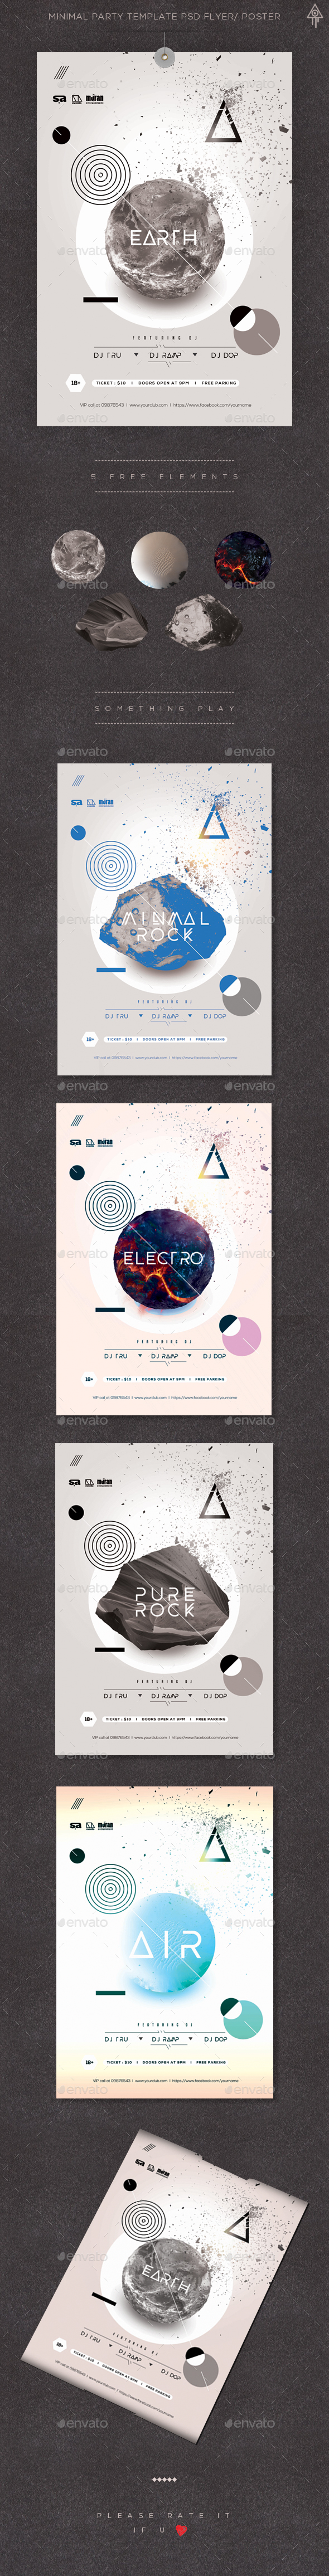 Minimal Party Template PSD Flyer/ Poster - Events Flyers